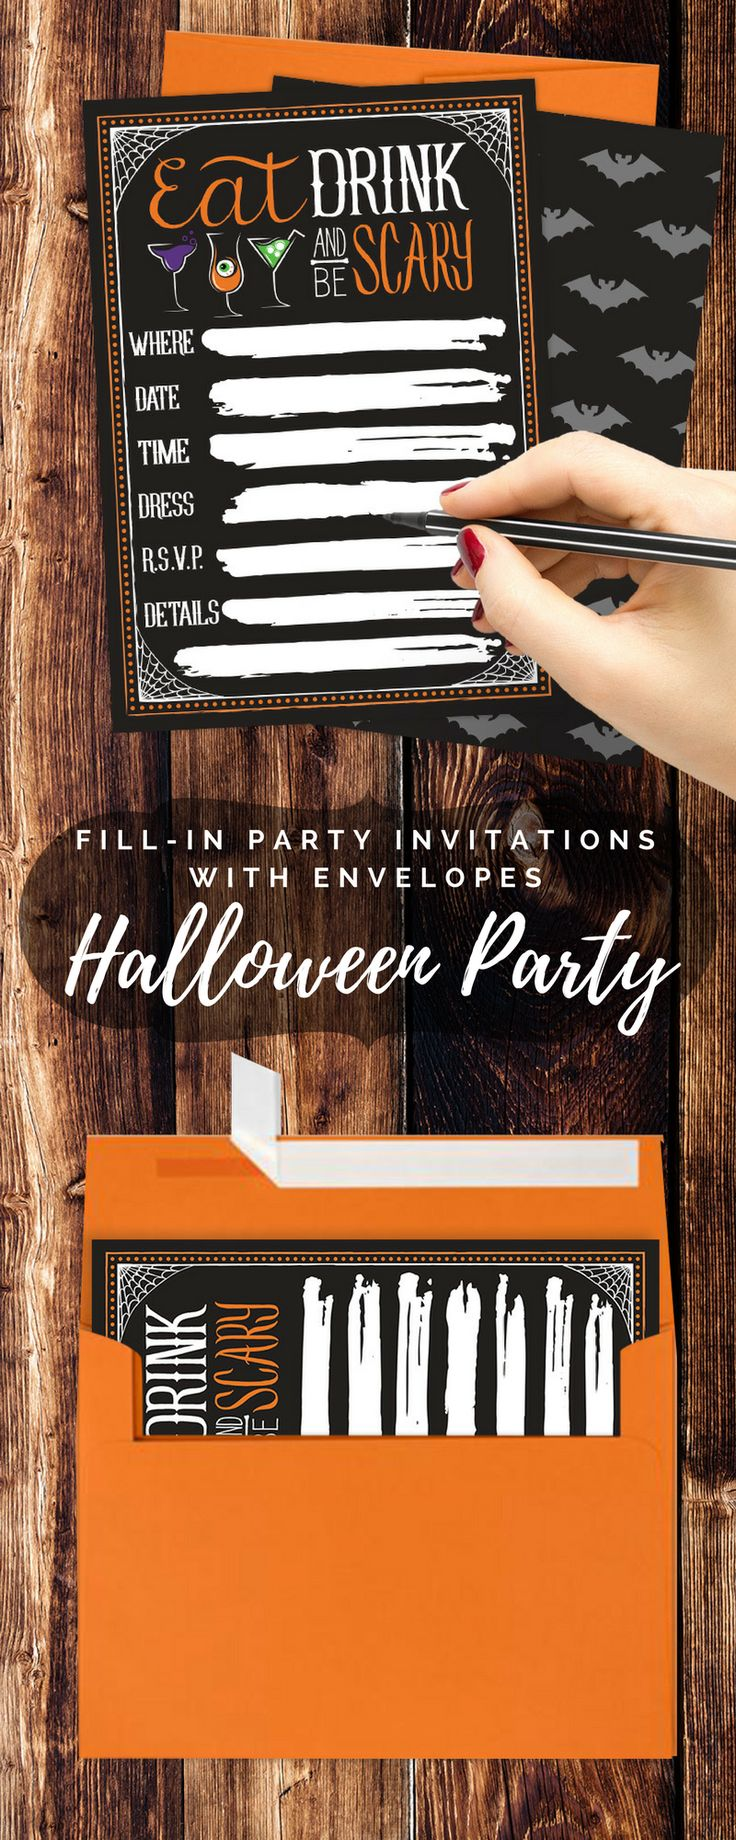 These Black Halloween Party Invitations with Bright Orange Self-Sealing Envelopes will Get Your Guests in the Spirit of Halloween before your Spooktacular Party.